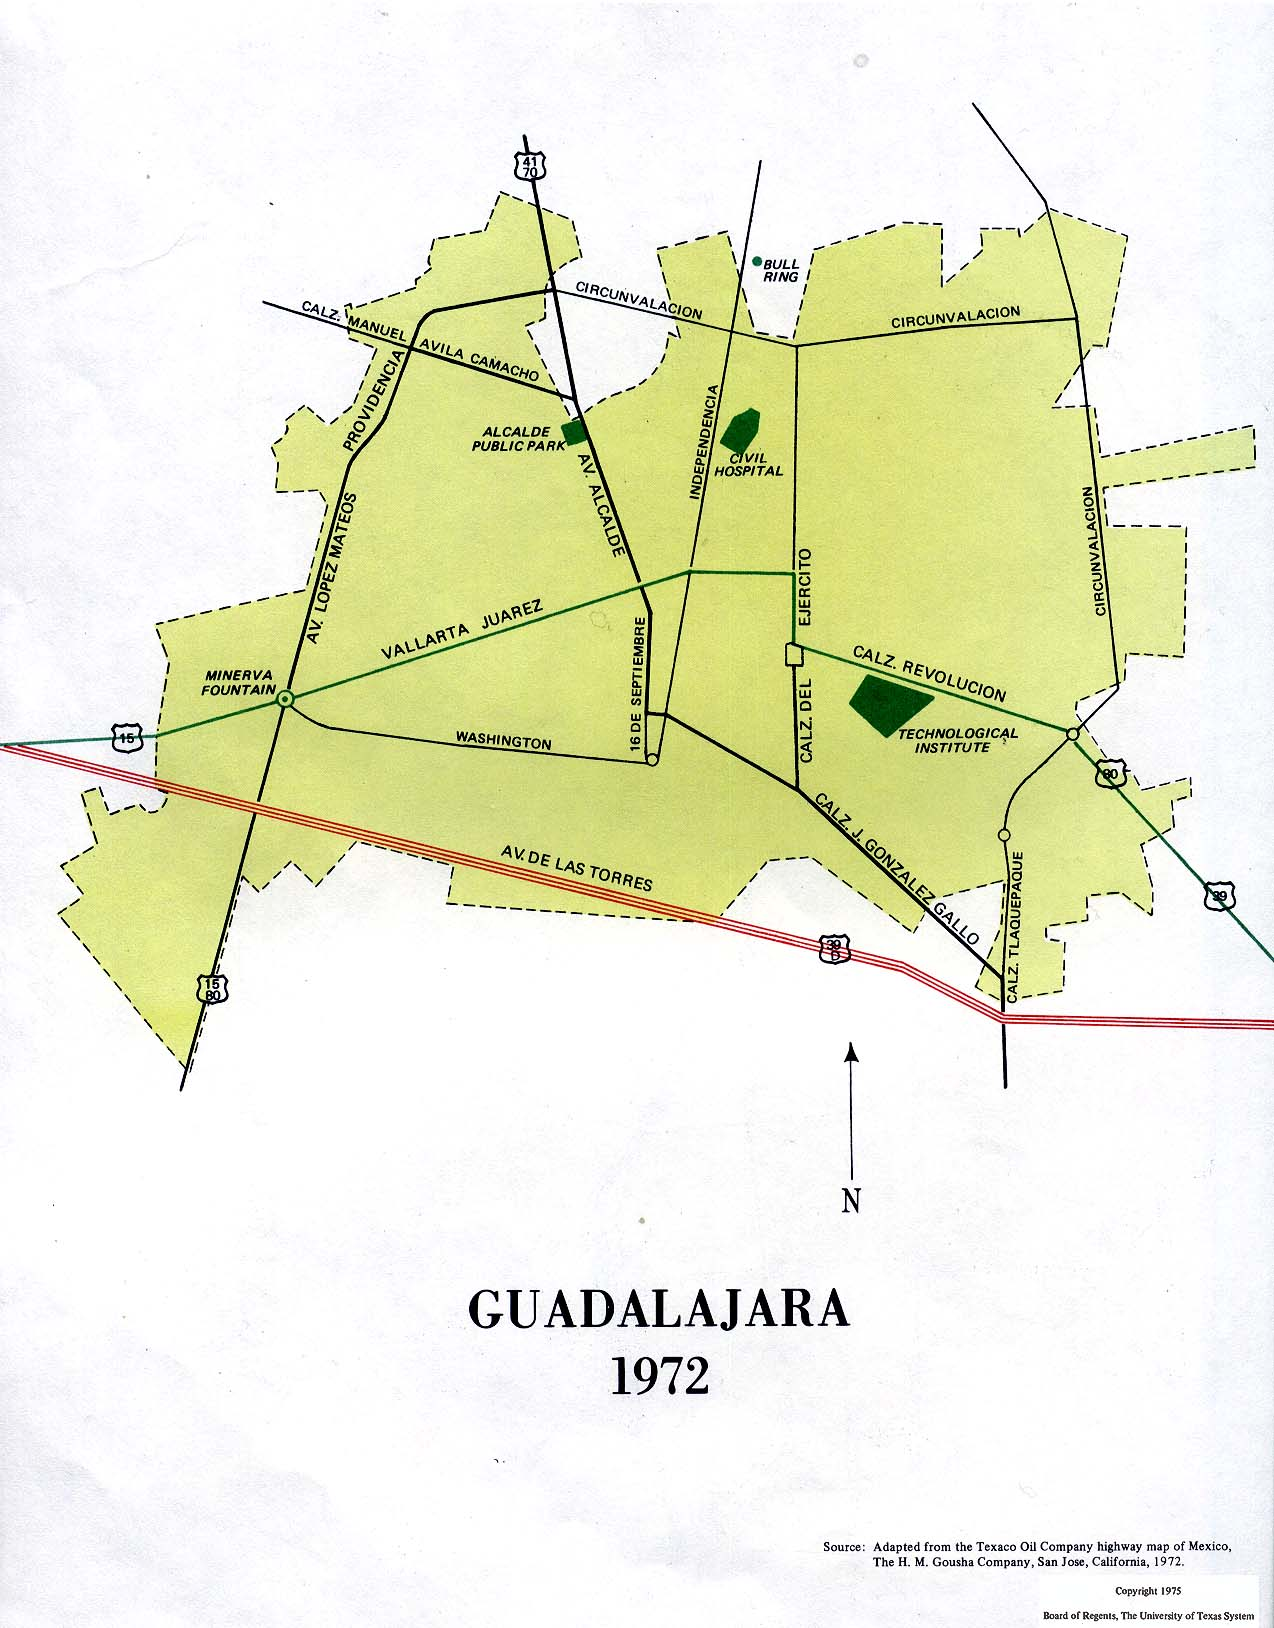 Guadalajara Map, Mexico